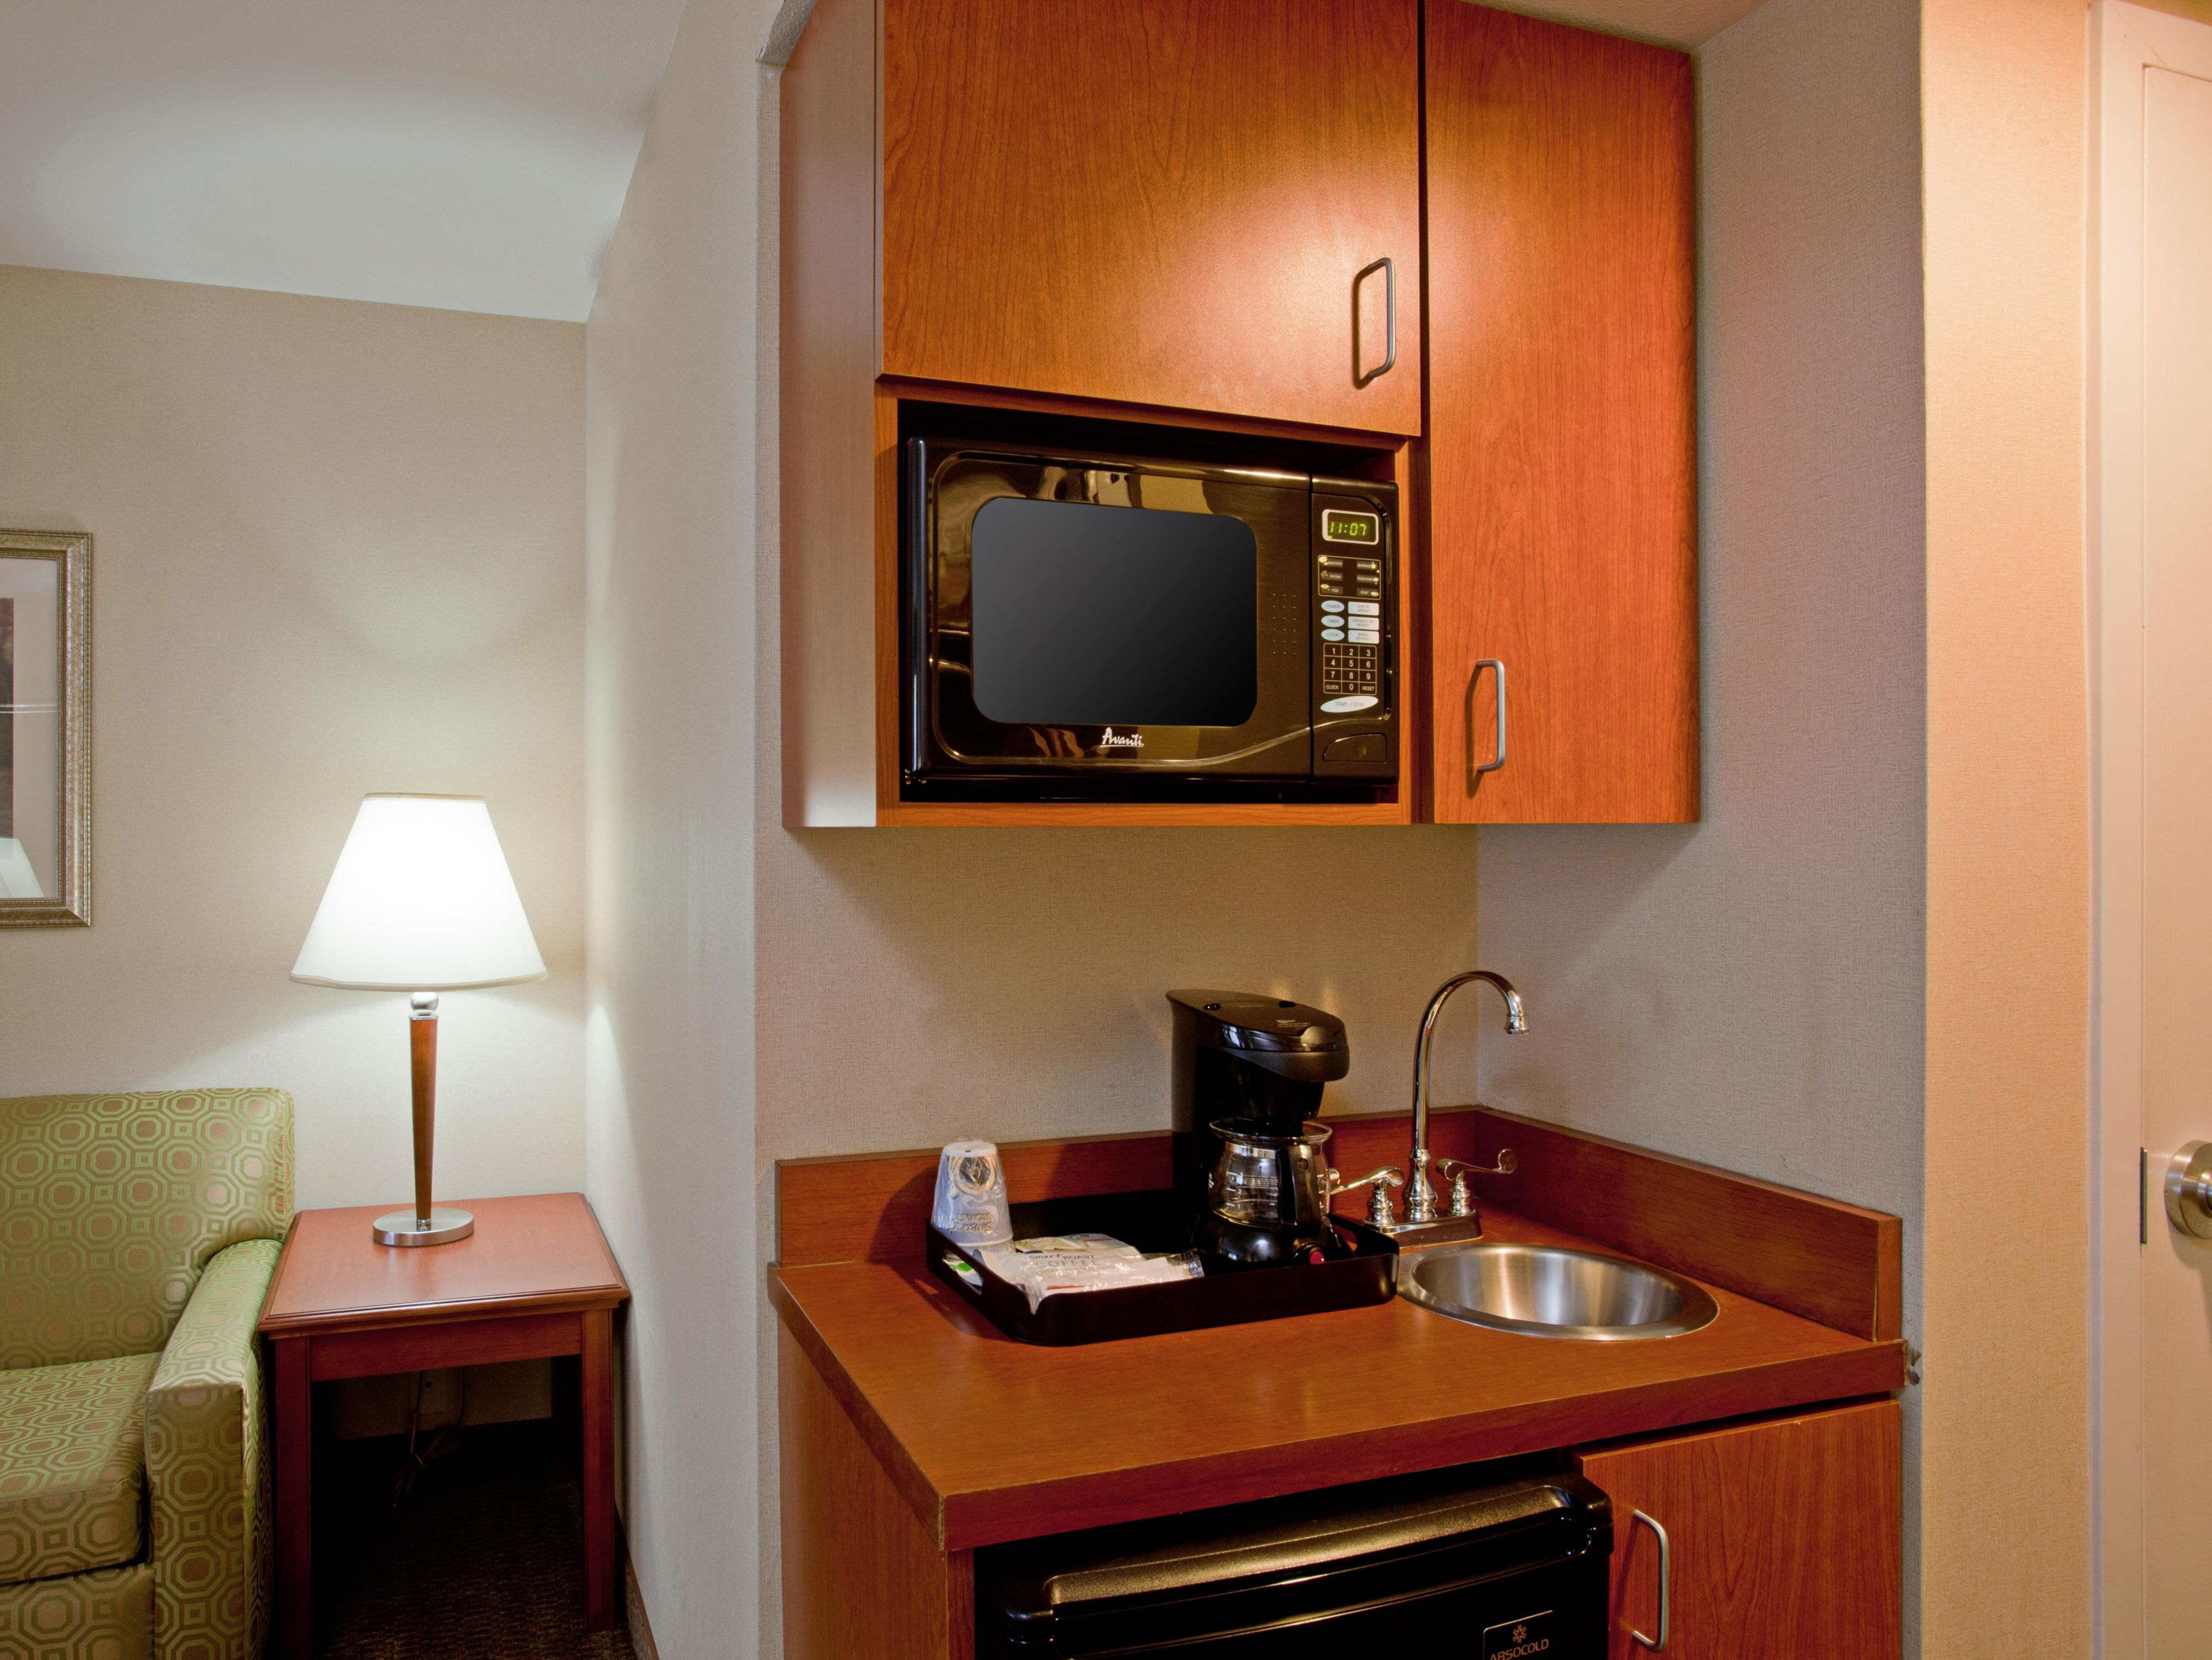 Holiday Inn Express Microwave & Refrig/Coffee Maker